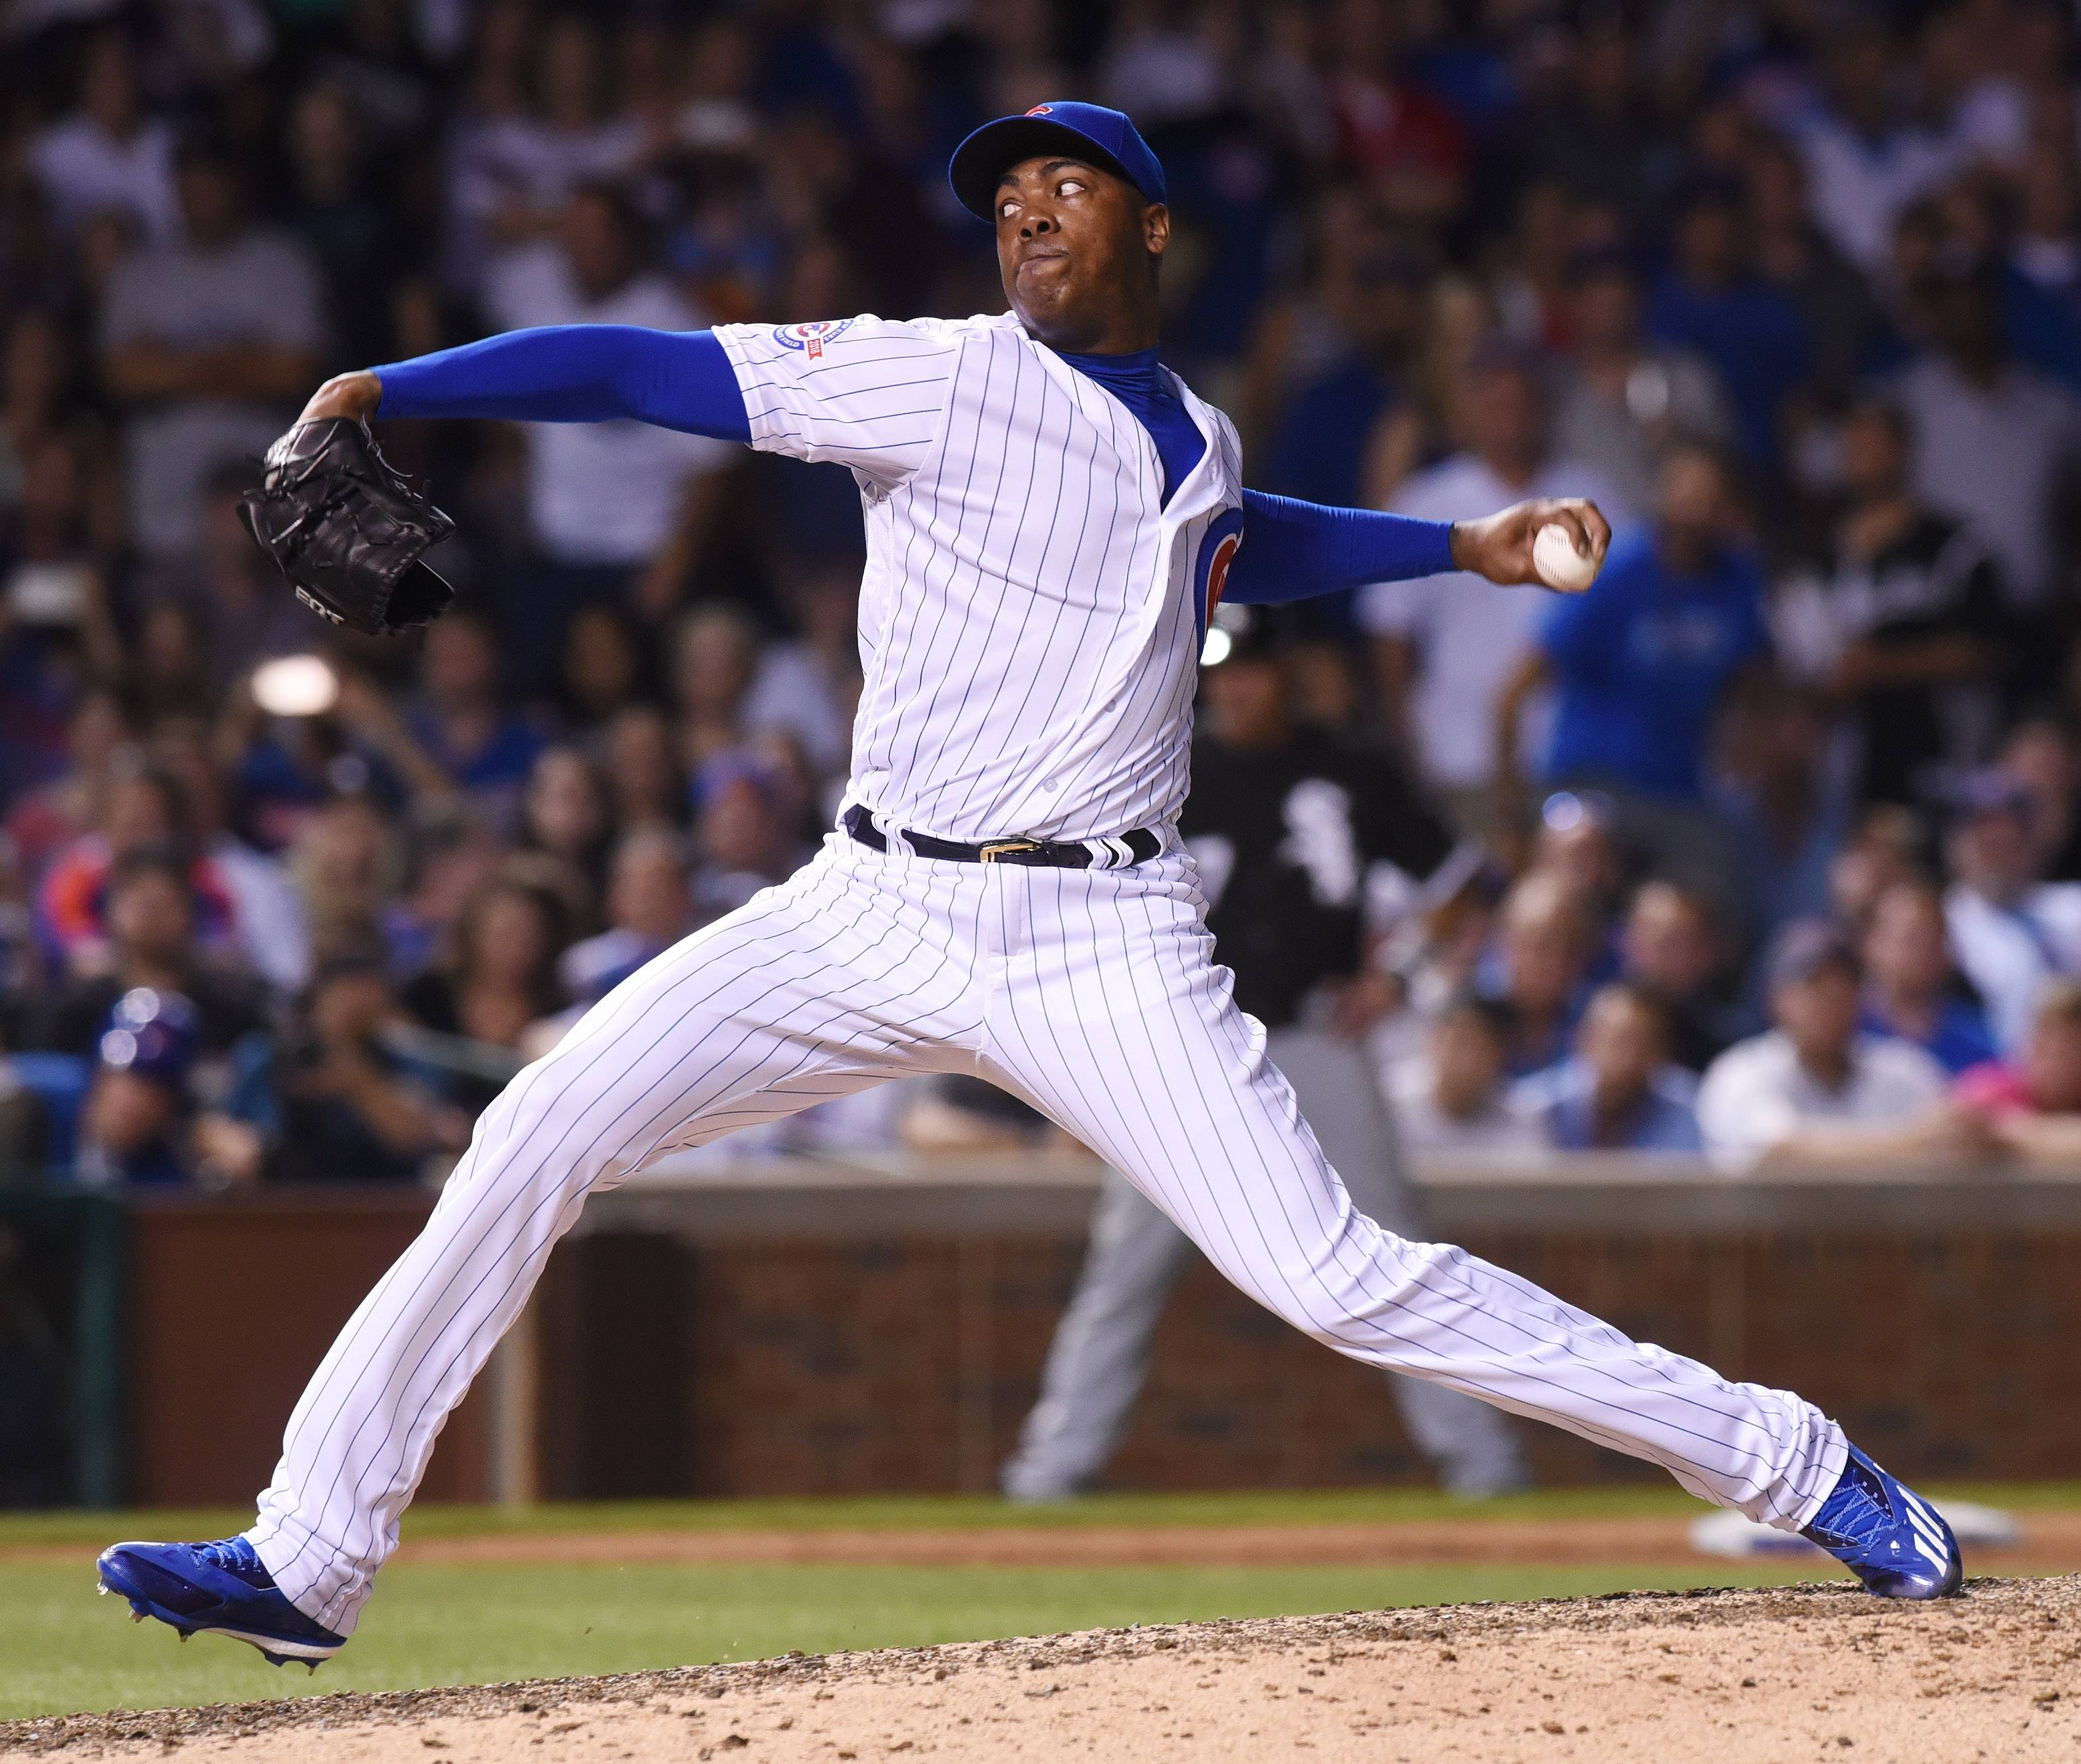 Joe Lewnard/jlewnard@dailyherald.comNew closer Aroldis Chapman makes his delivery in his Cubs debut, which was a non-save situation, during Wednesday's 8-1 victory over the White Sox at Wrigley Field in Chicago.